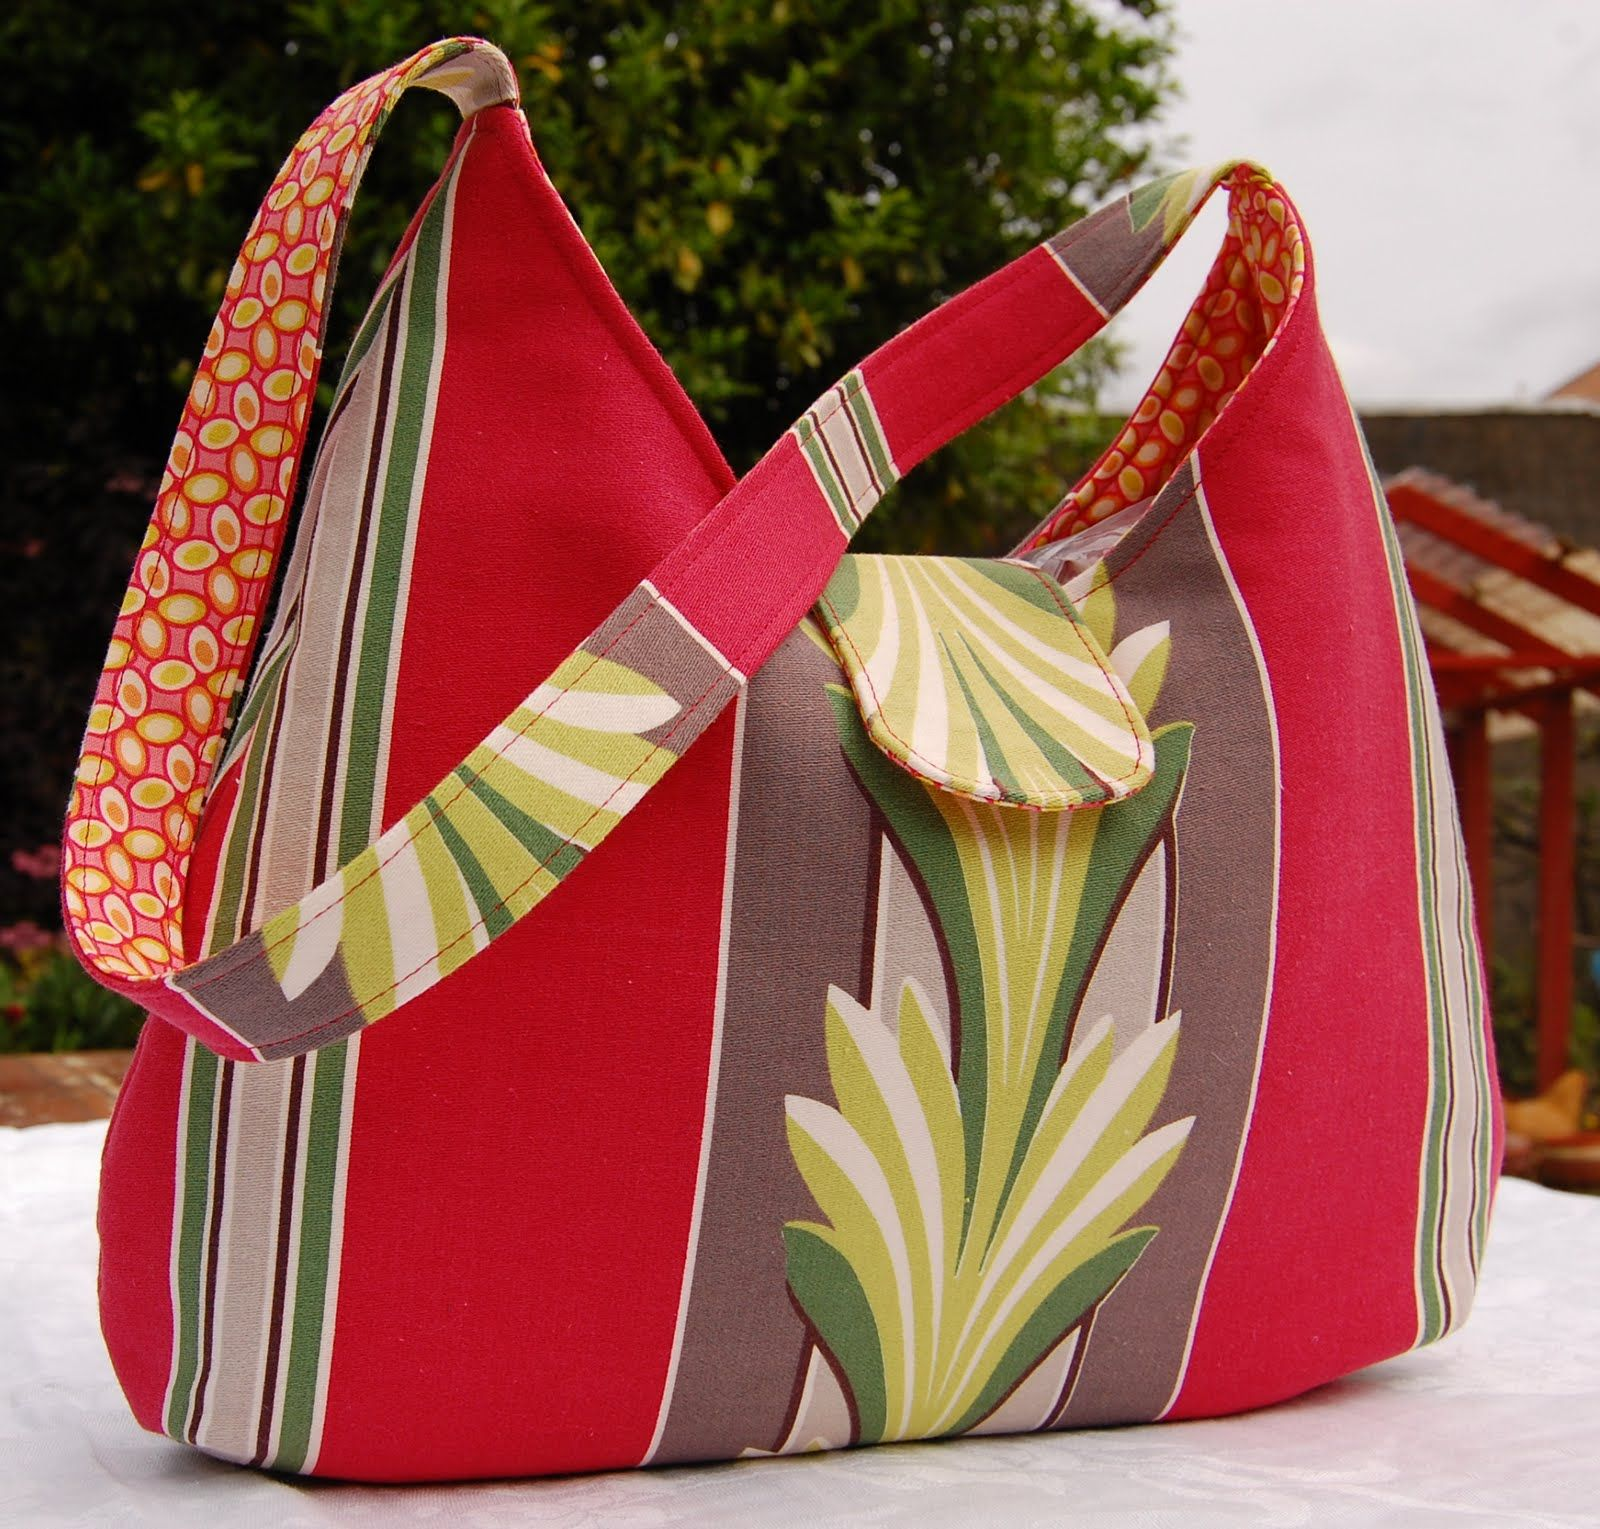 Free Fabric Handbag Patterns My Mom Asked Me To Use This